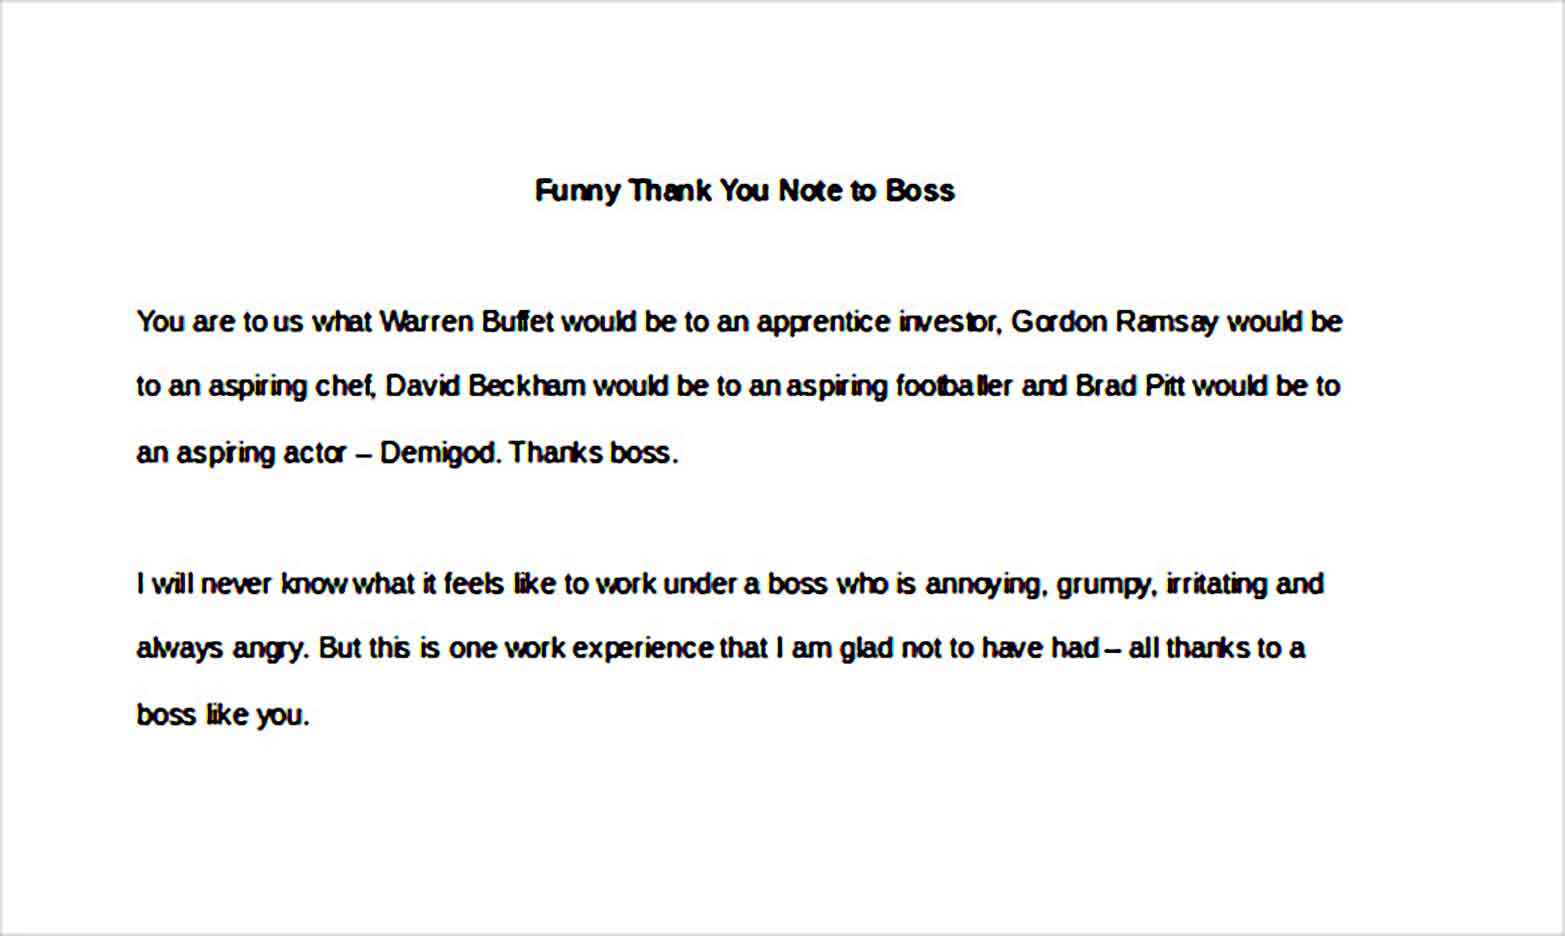 Funny Thank You Note to Boss1